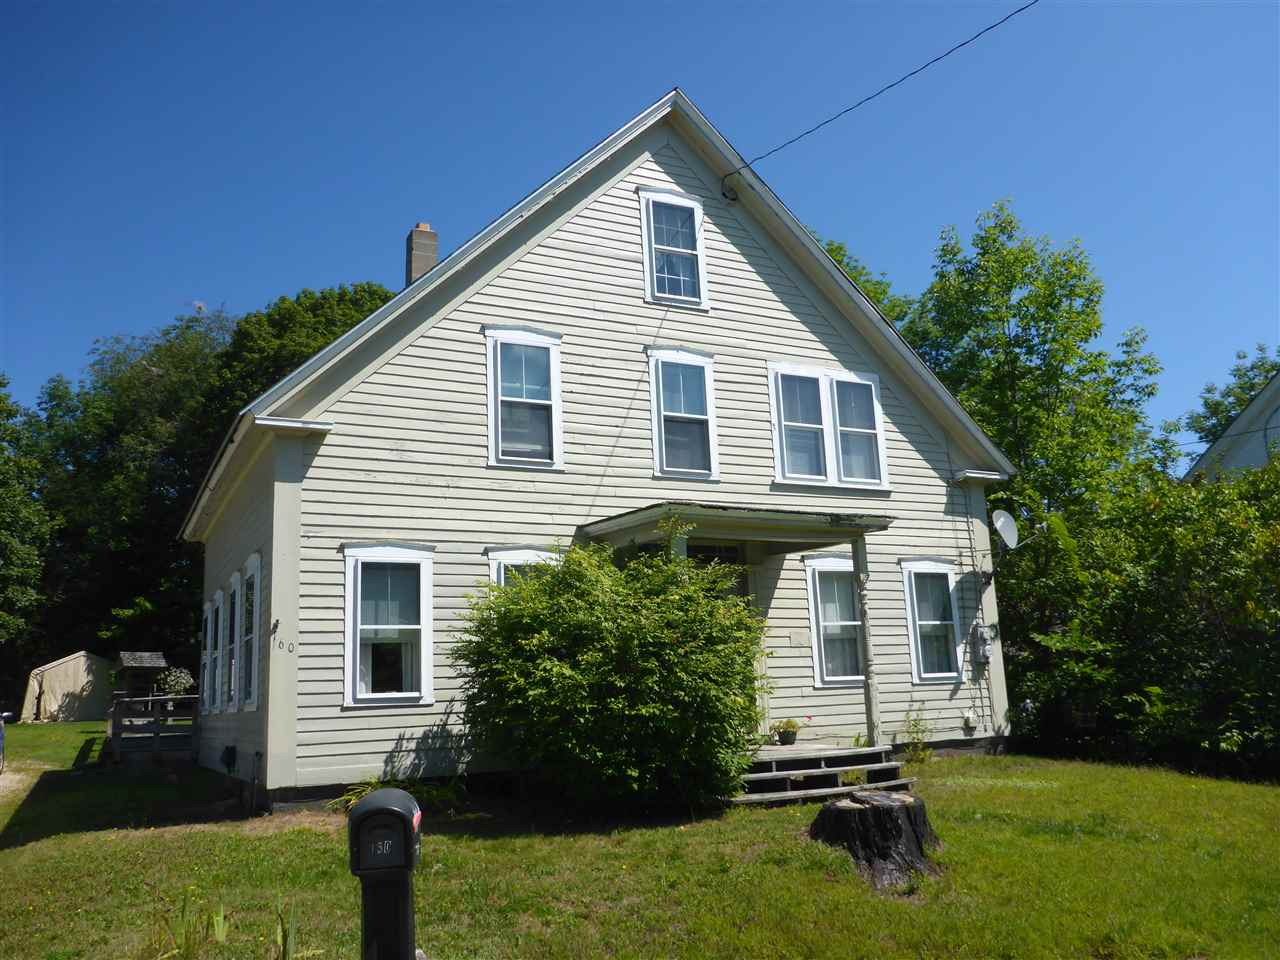 MLS 4773285: 160 NH Route 123, Marlow NH